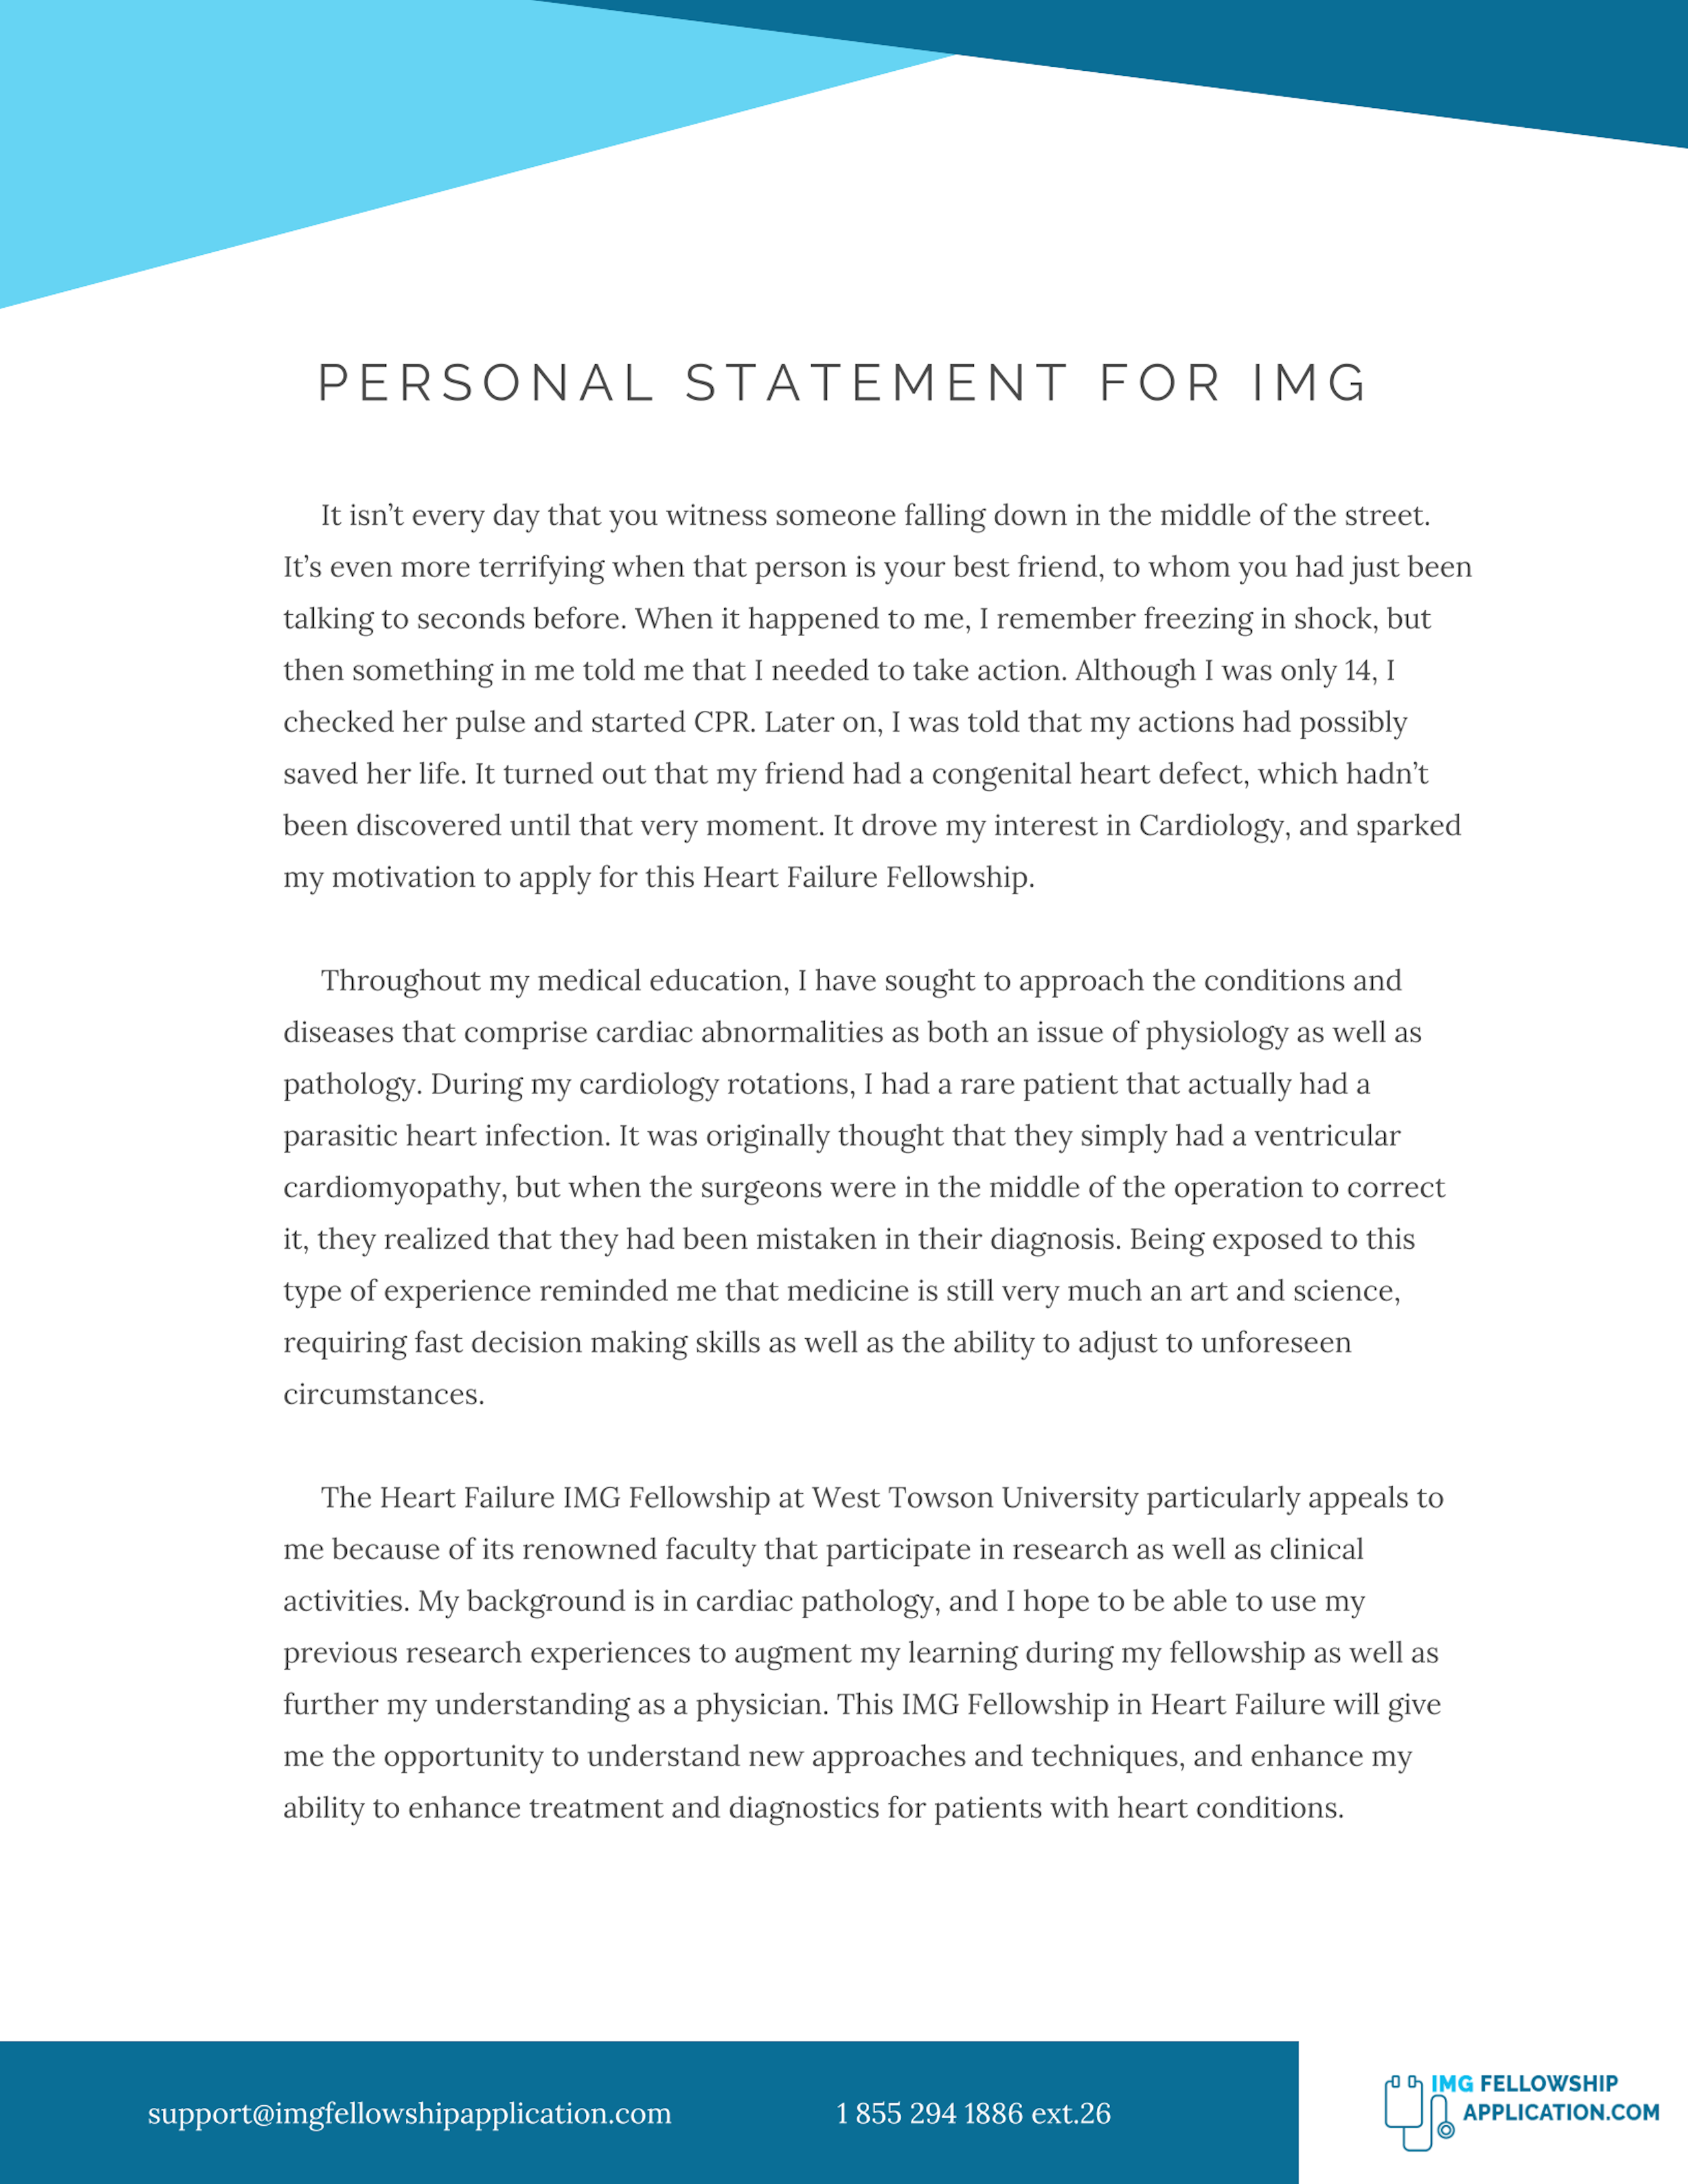 To Get Top Quality Personal Statement For Img All You Have Do I Follow Thi Link Http Www Imgfellowshipapplicati Pediatric Internal Medicine Psychiatry